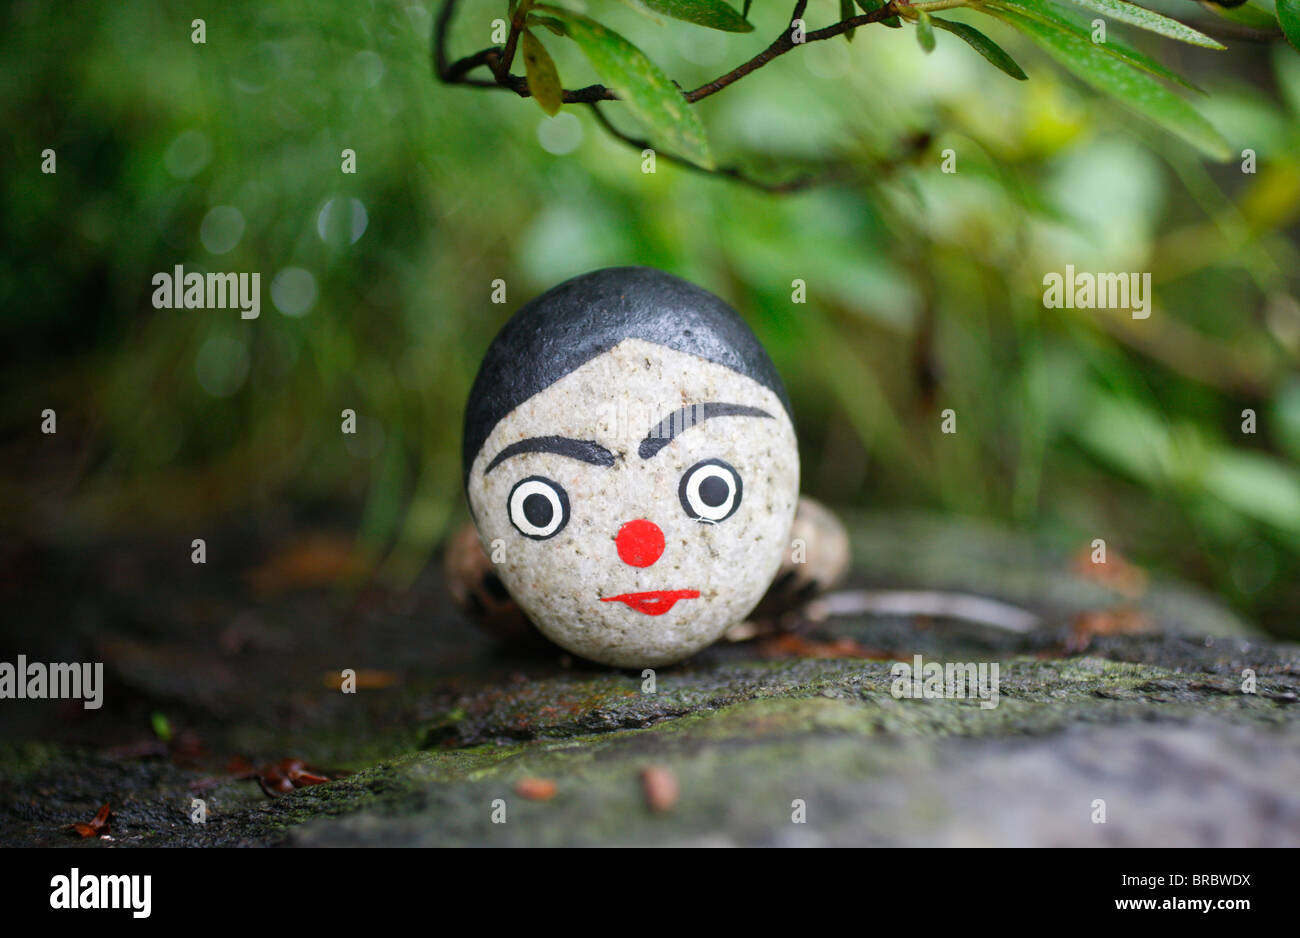 Painted stone used in shamanist rituals, Seoul, South Korea - Stock Image